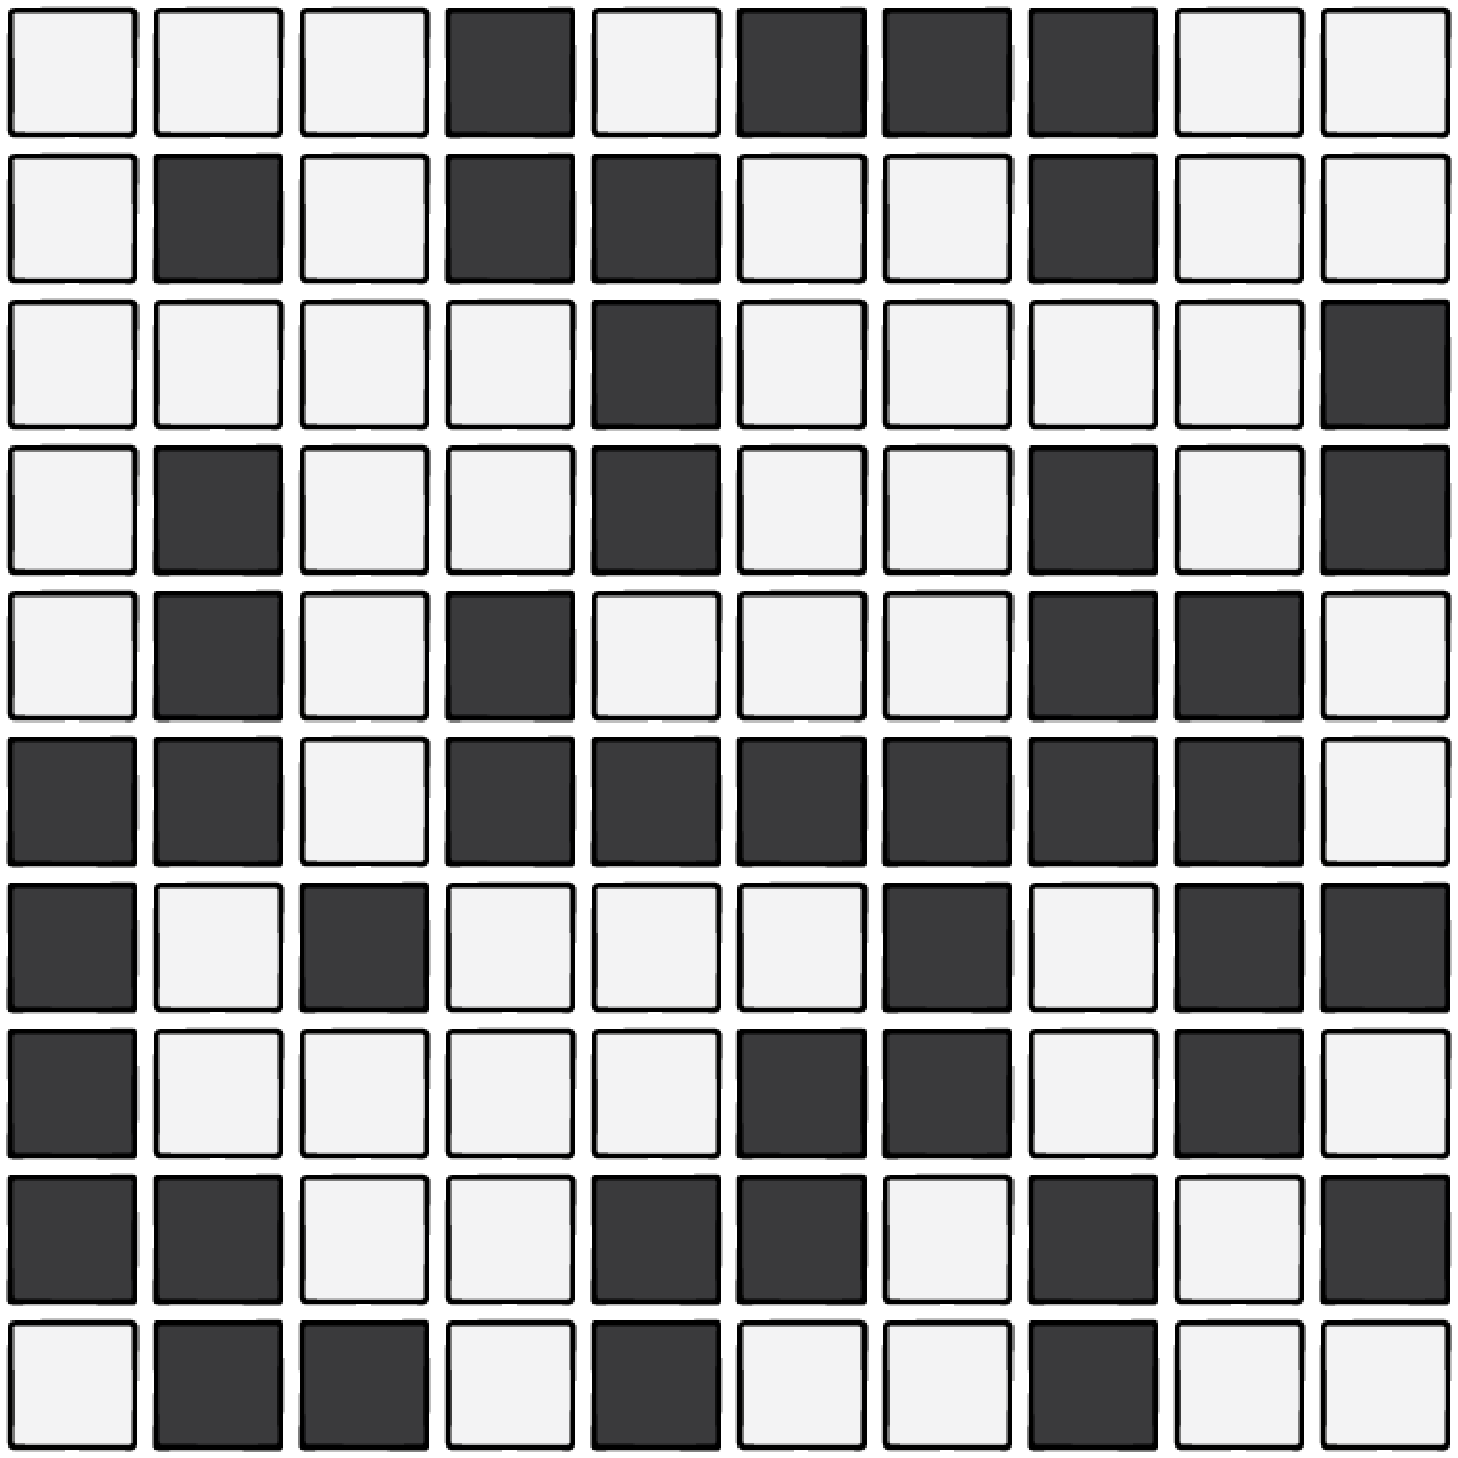 A 10x10 grid of black and white tiles.